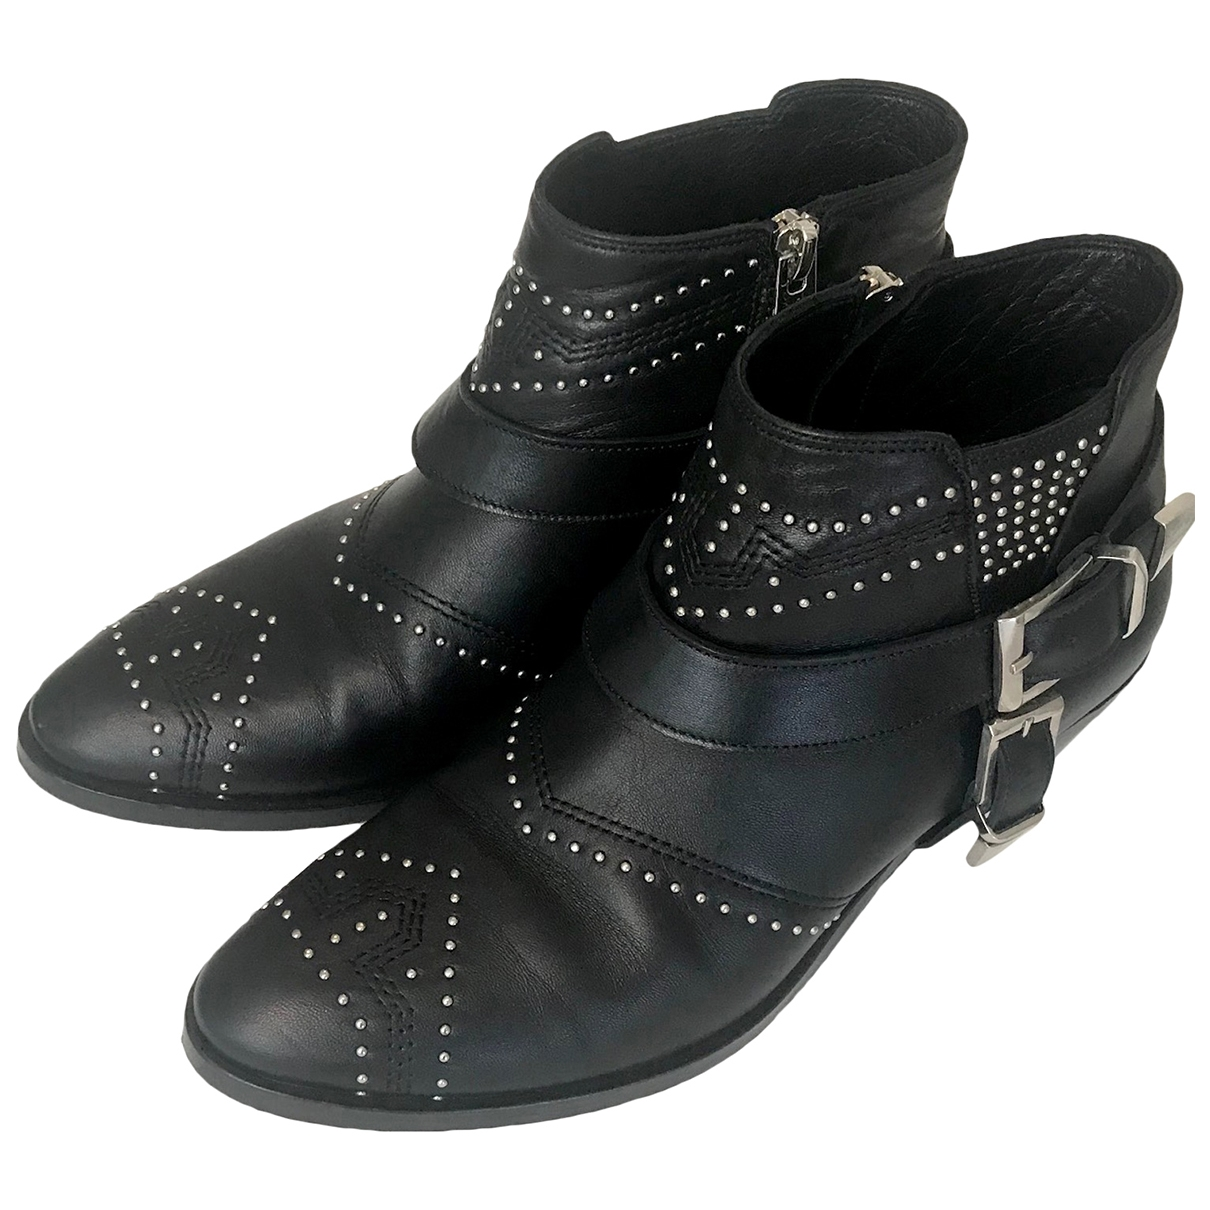 Anine Bing \N Black Leather Ankle boots for Women 36 EU